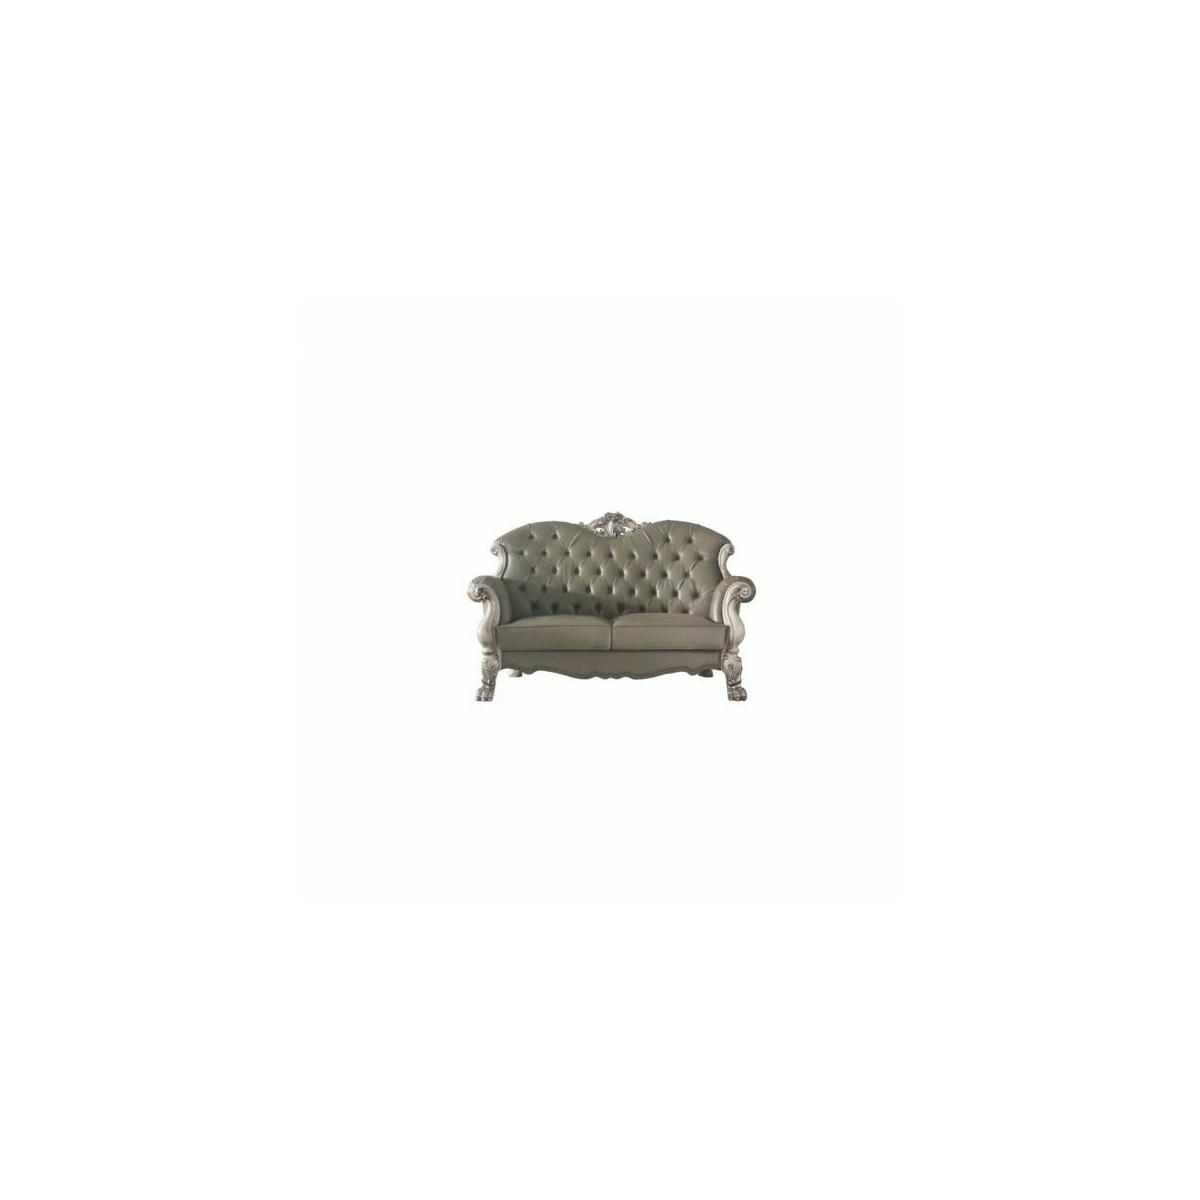 ACME Dresden Loveseat w/3 Pillows - 58176 - Traditional, Vintage - PU, Frame: Wood (Poplar, Ply), Poly-Resin (Fiberglass) - Vintage Bone White and PU